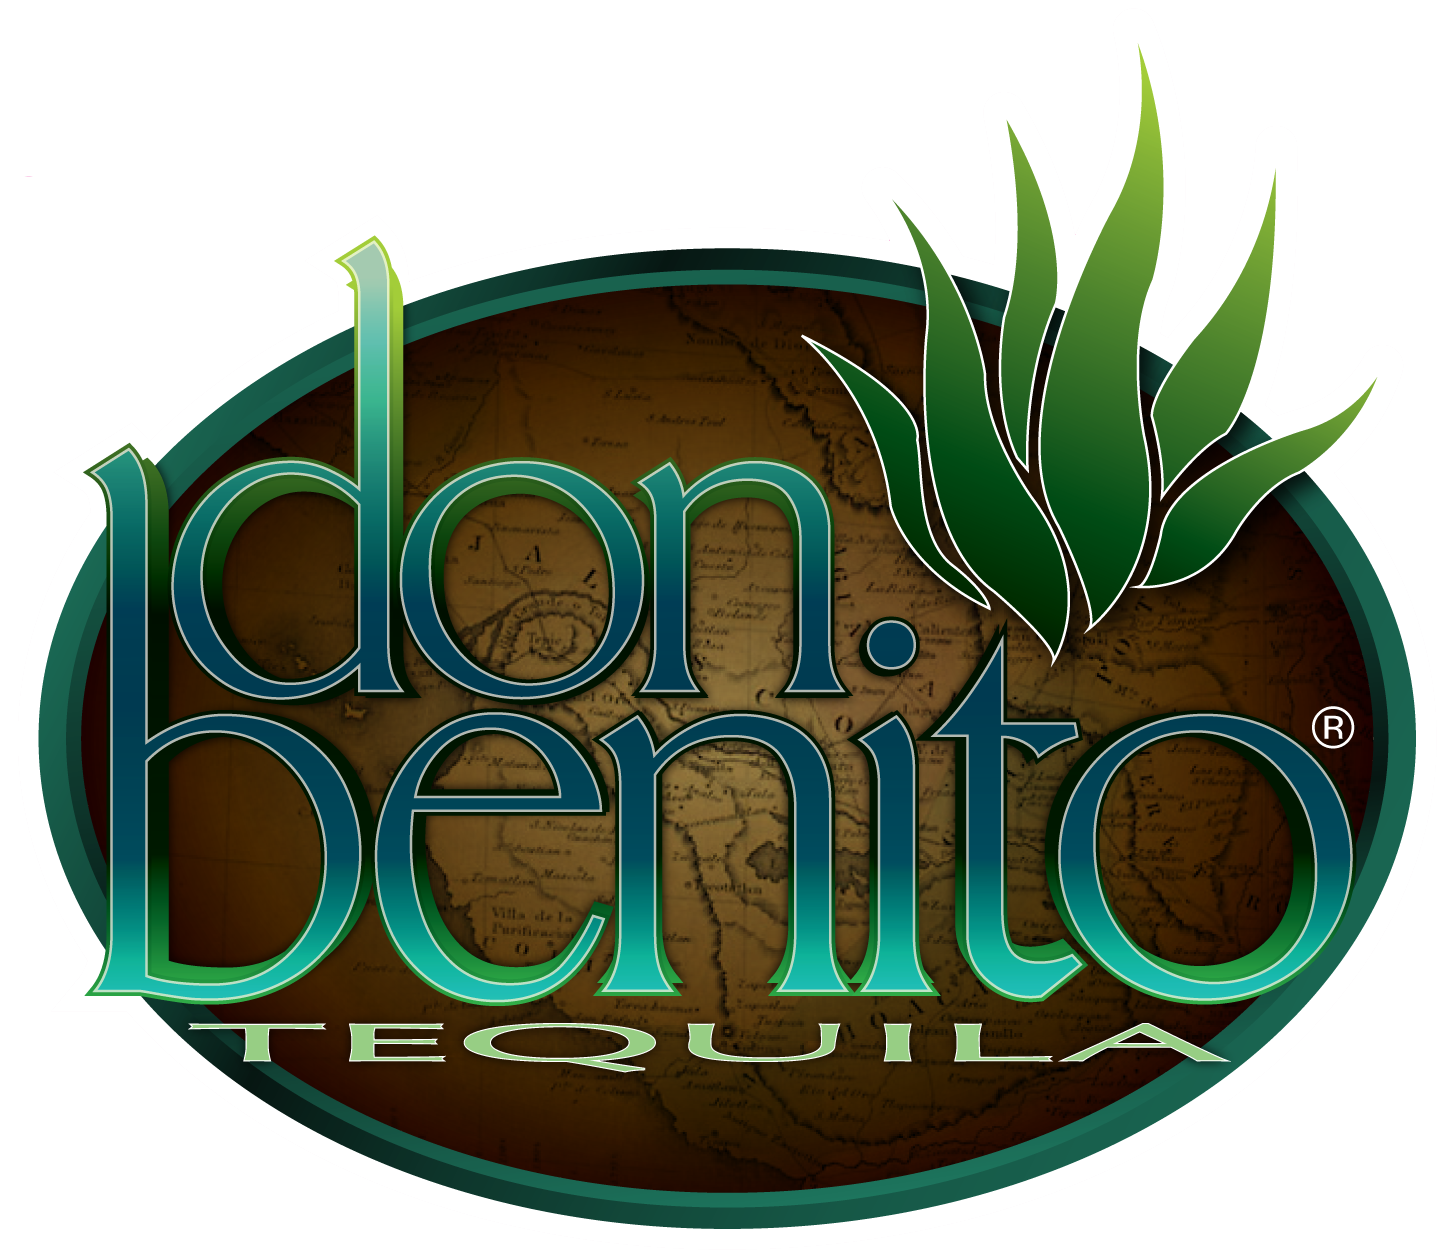 Don Benito Tequila